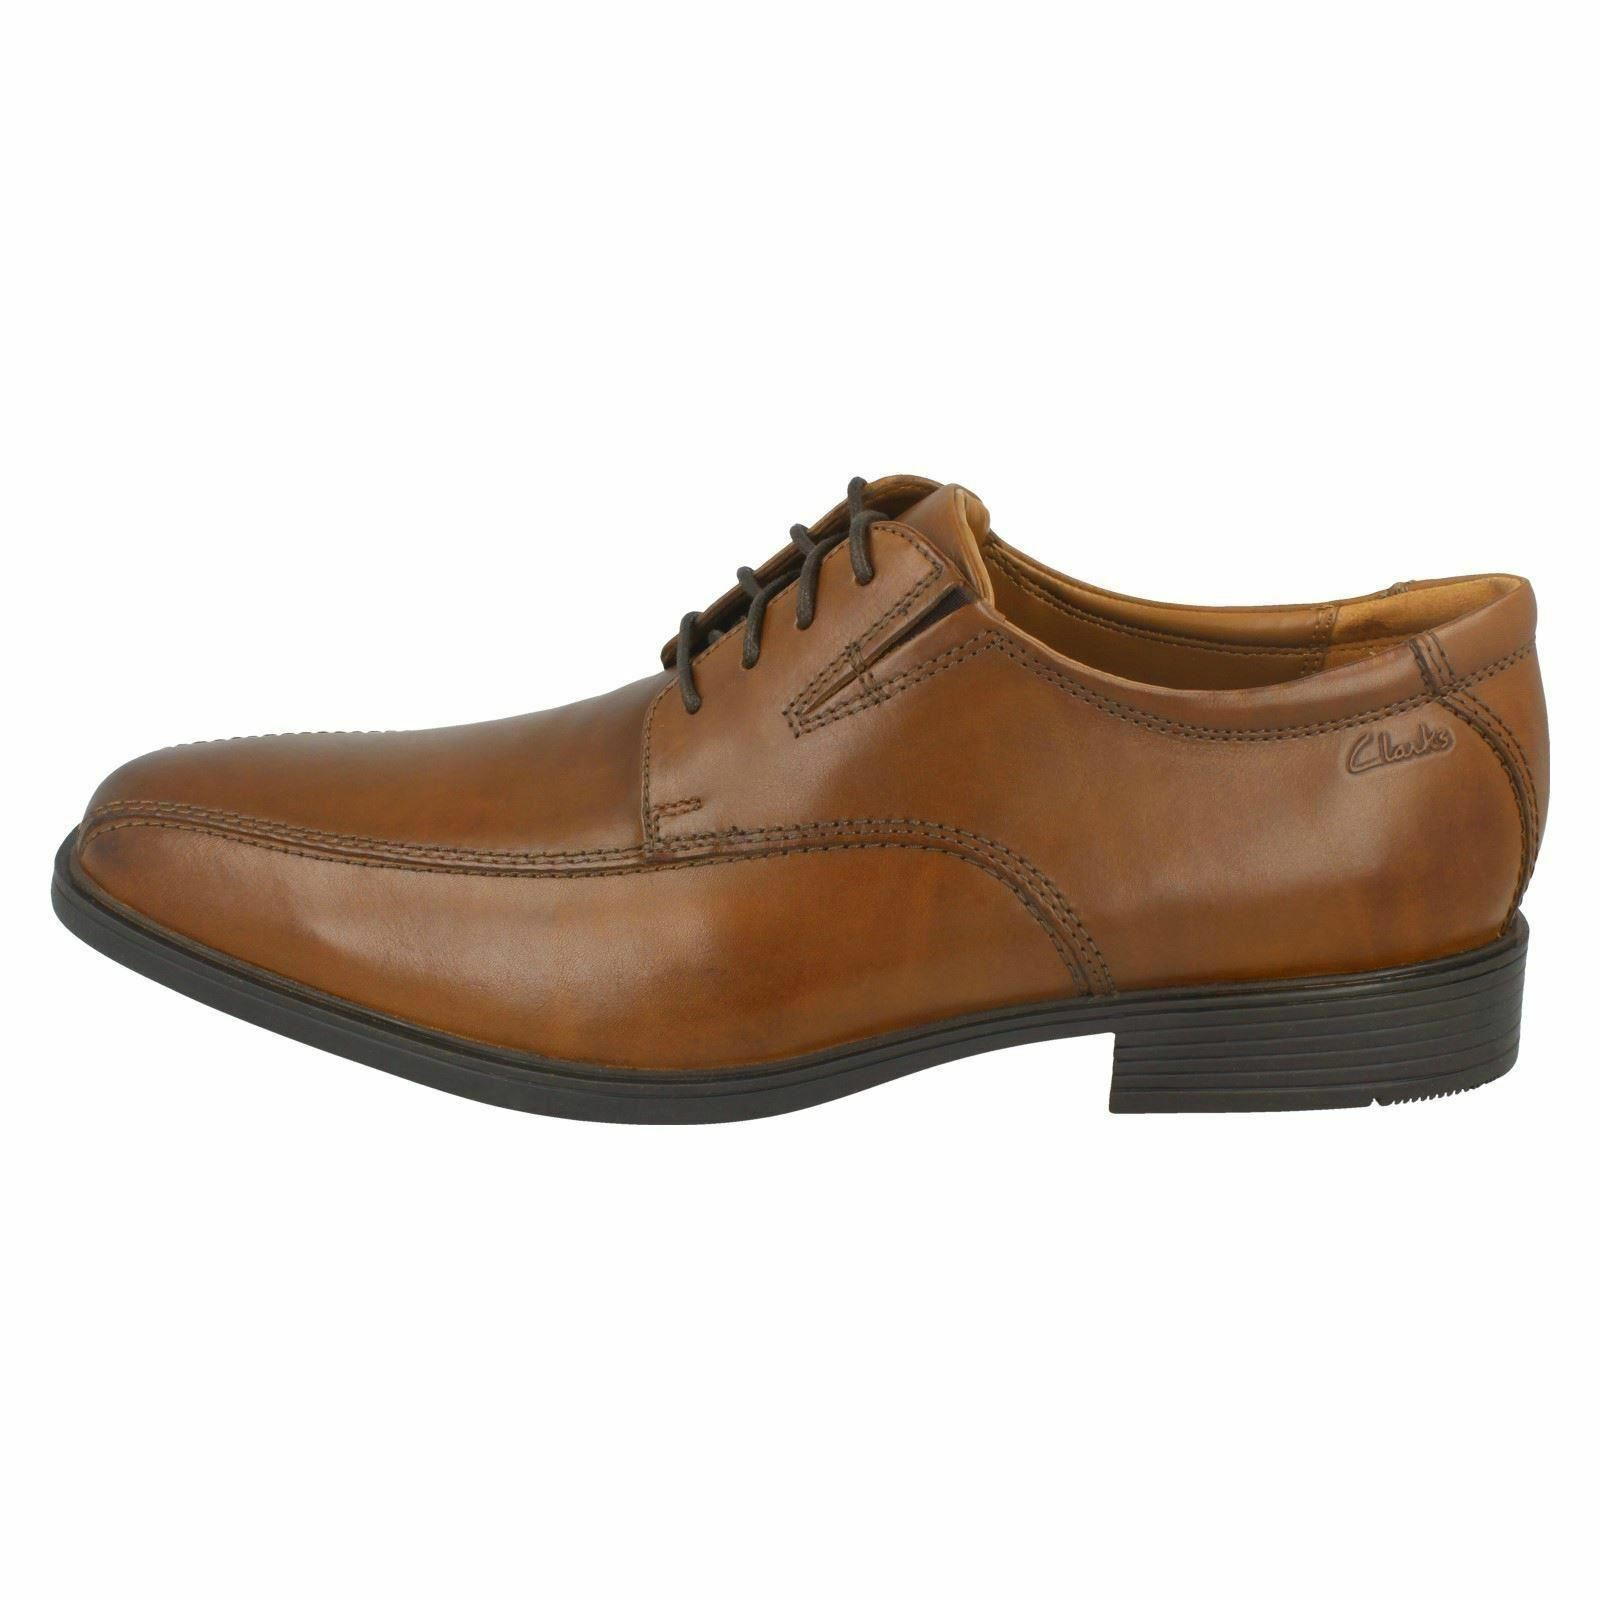 Mens Black/Brown/Dark Tan Clarks Leather Fitting Lace Up Shoes G Fitting Leather  Tilden Walk cb732c